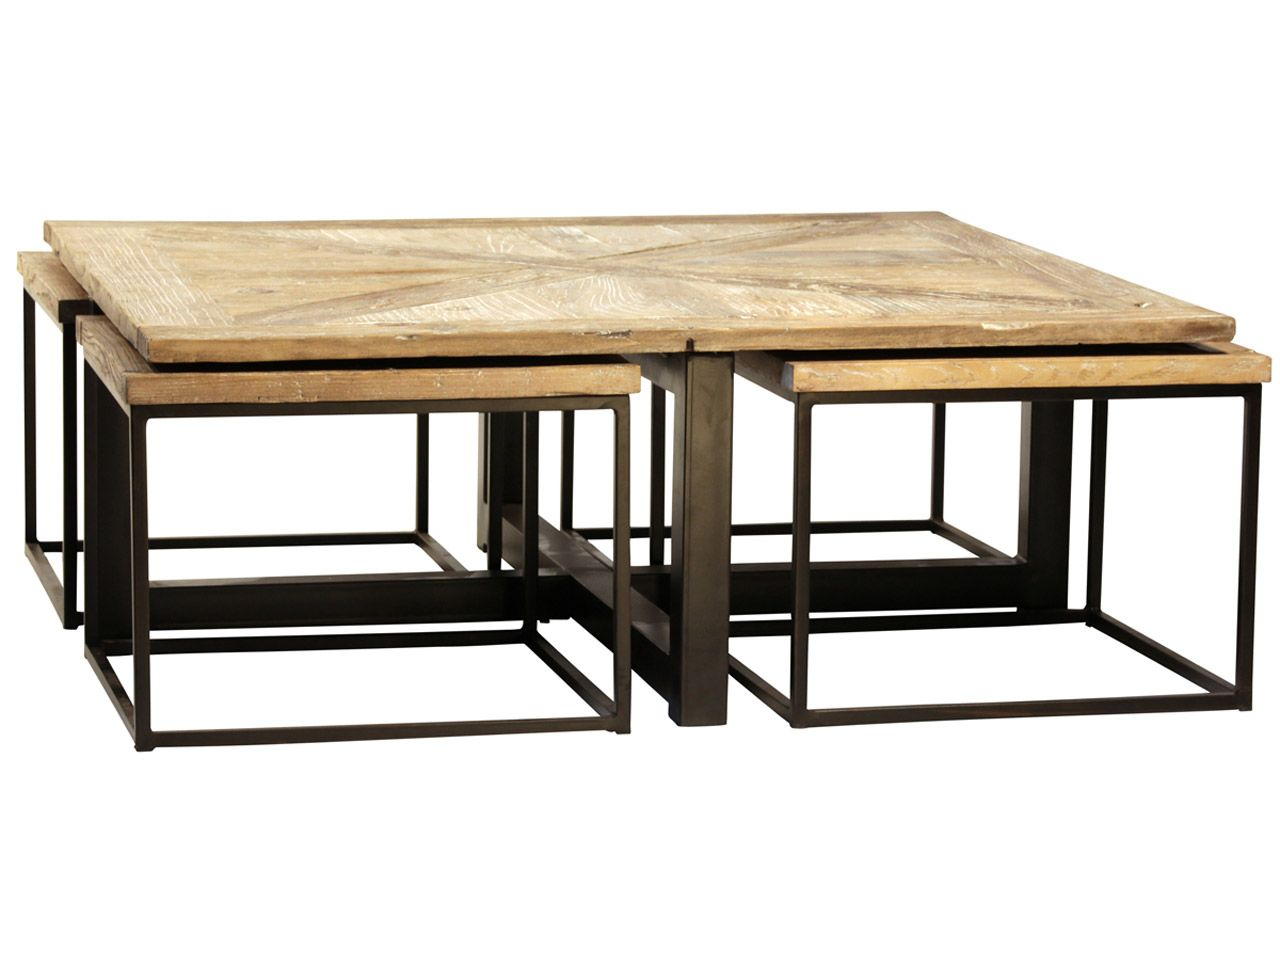 Black Metal Nesting Tables Furniture Drayton Nesting Coffee Table With Black Iron